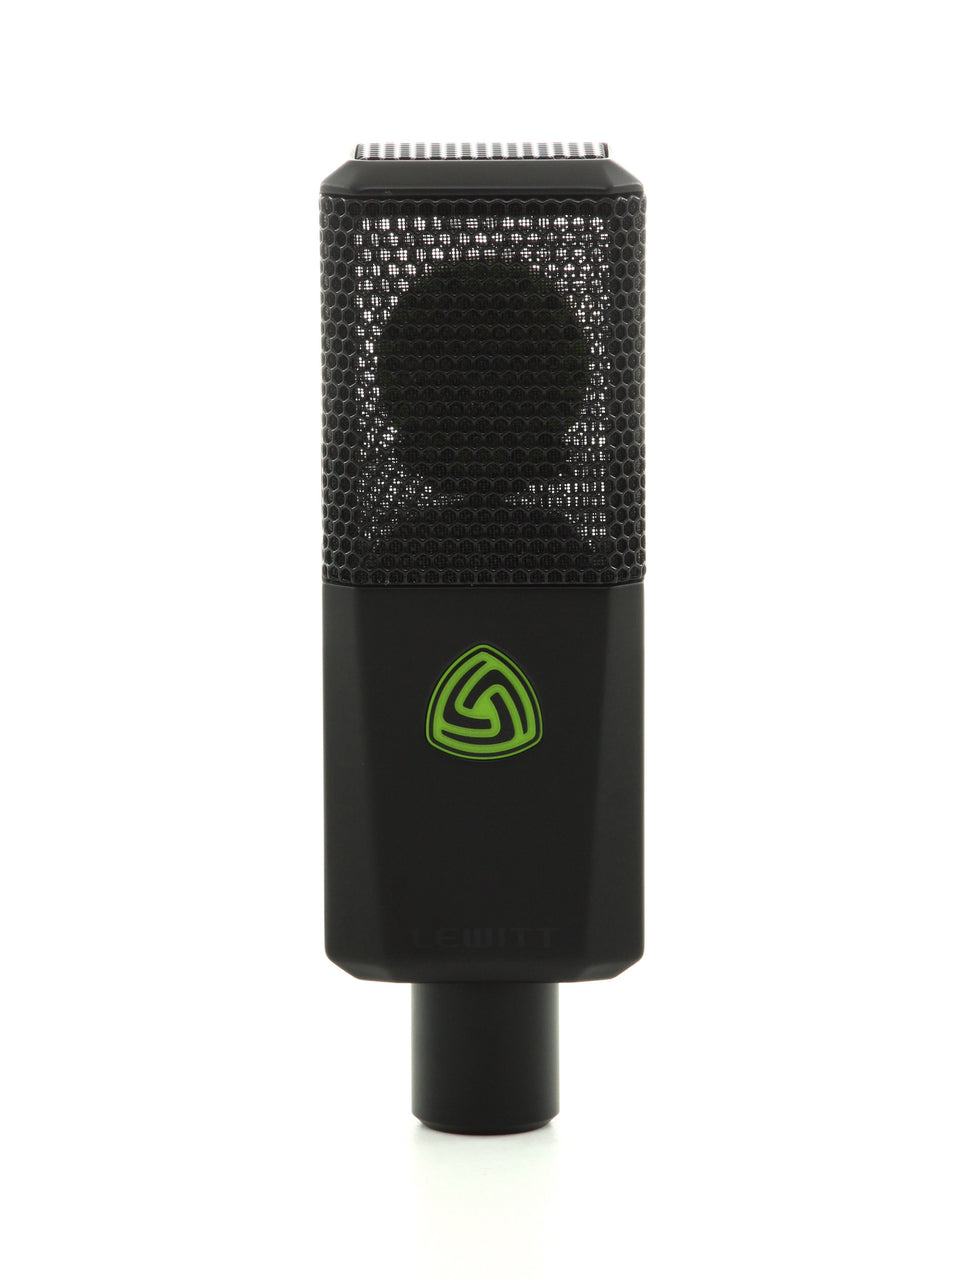 Lewitt LCT550 Reference Class Studio Condenser Microphone